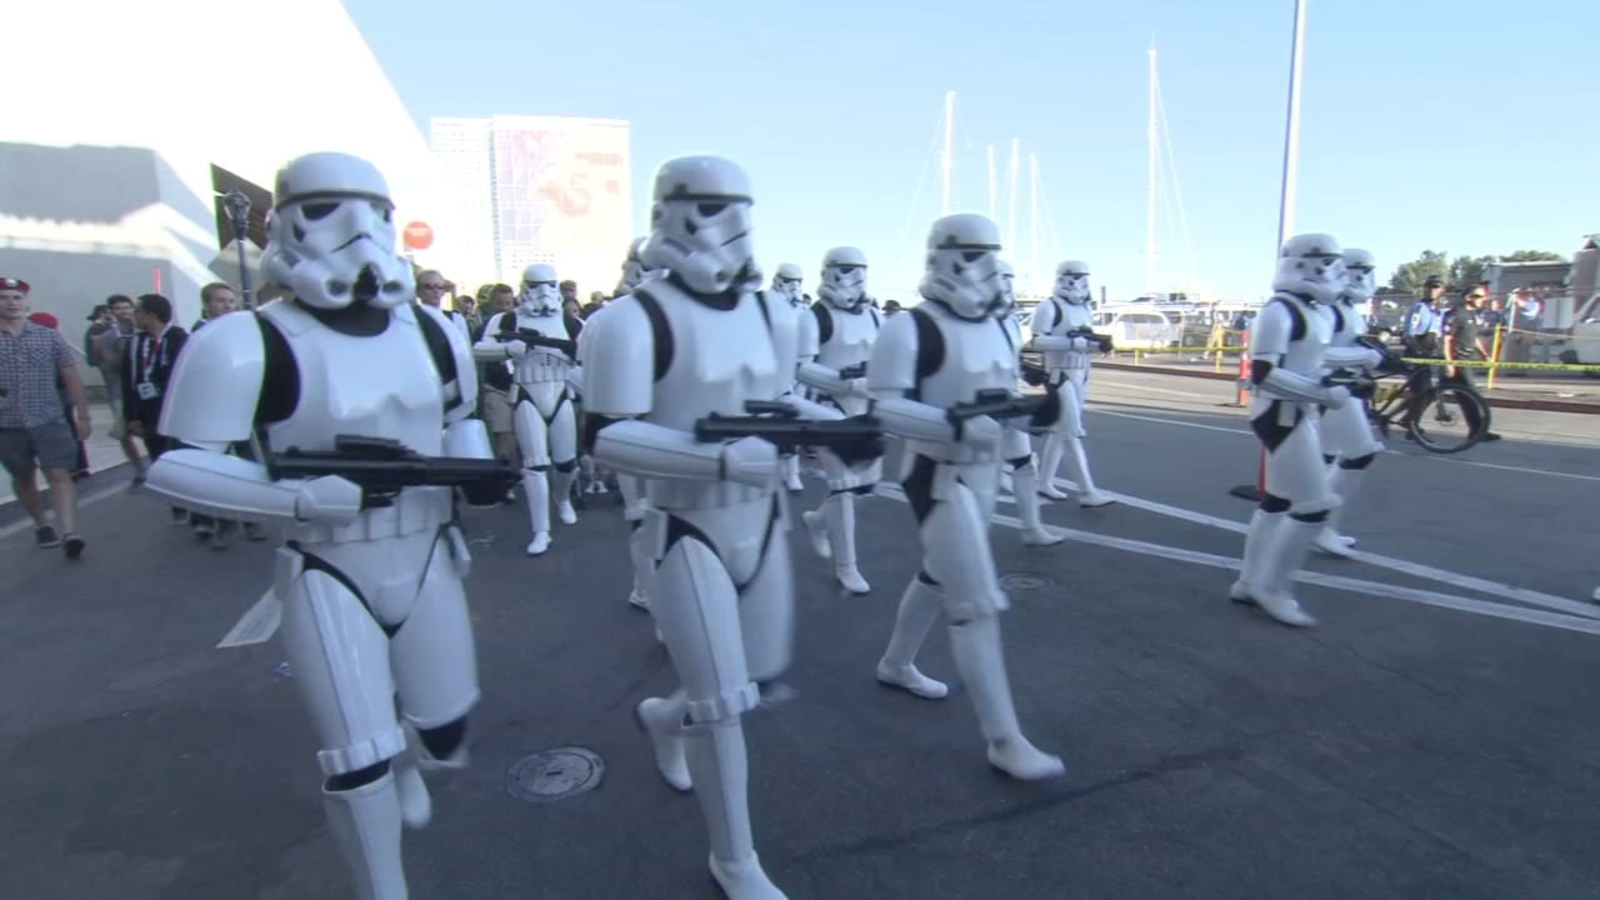 Disneyland holding auditions for 'Star Wars' Stormtroopers